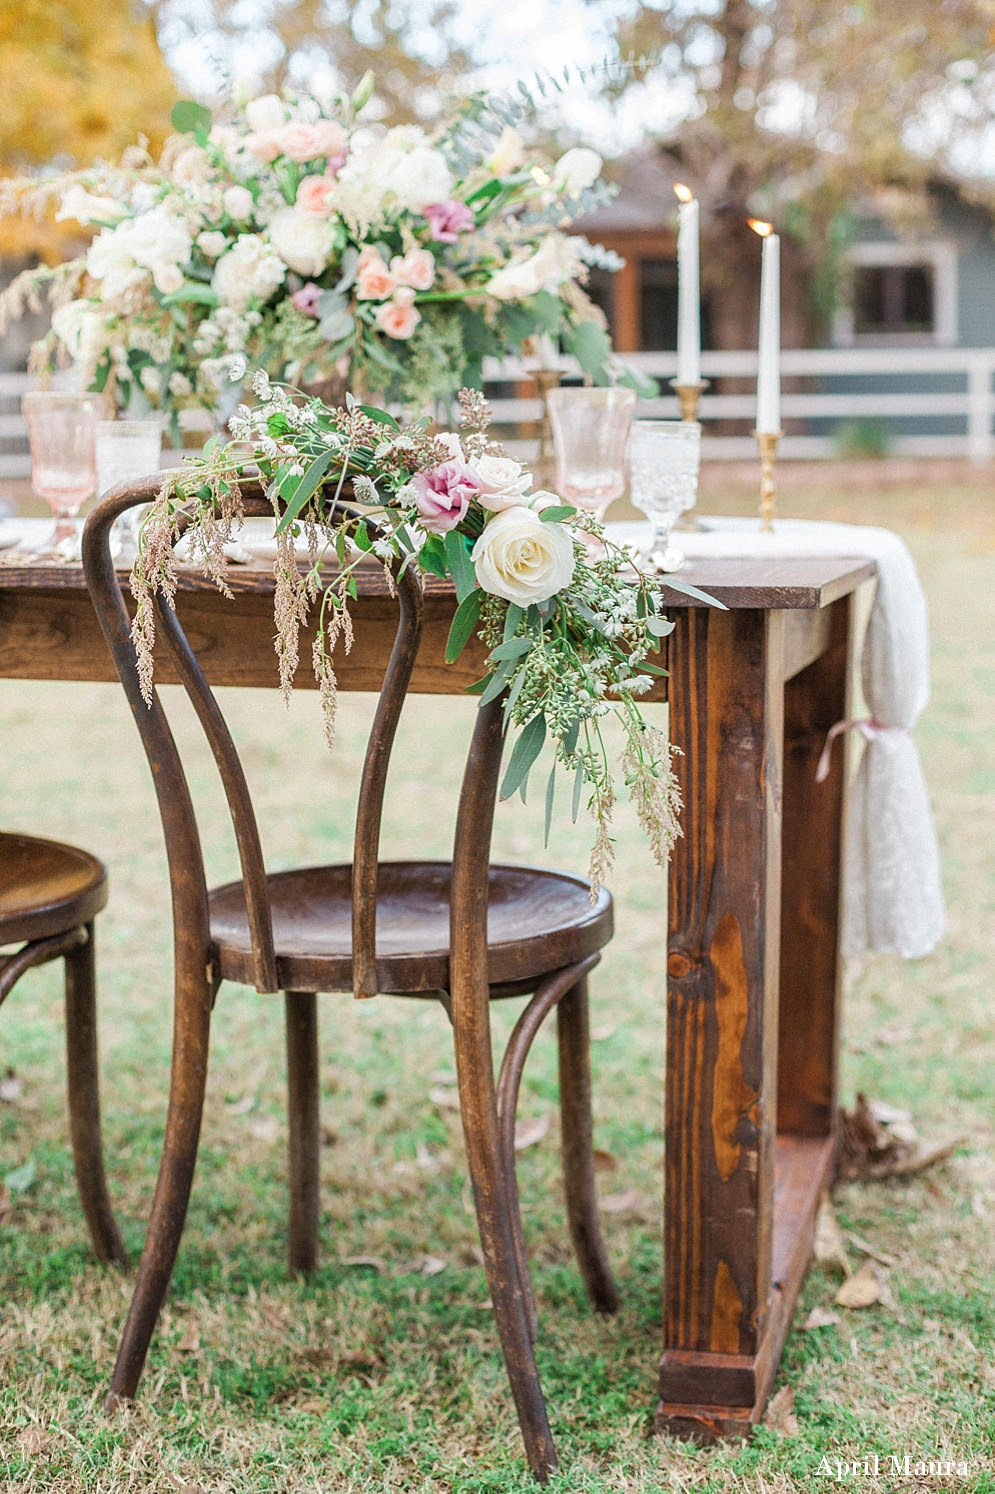 Dusty Pink Wedding: The Farm at South Mountain - St. Louis ...